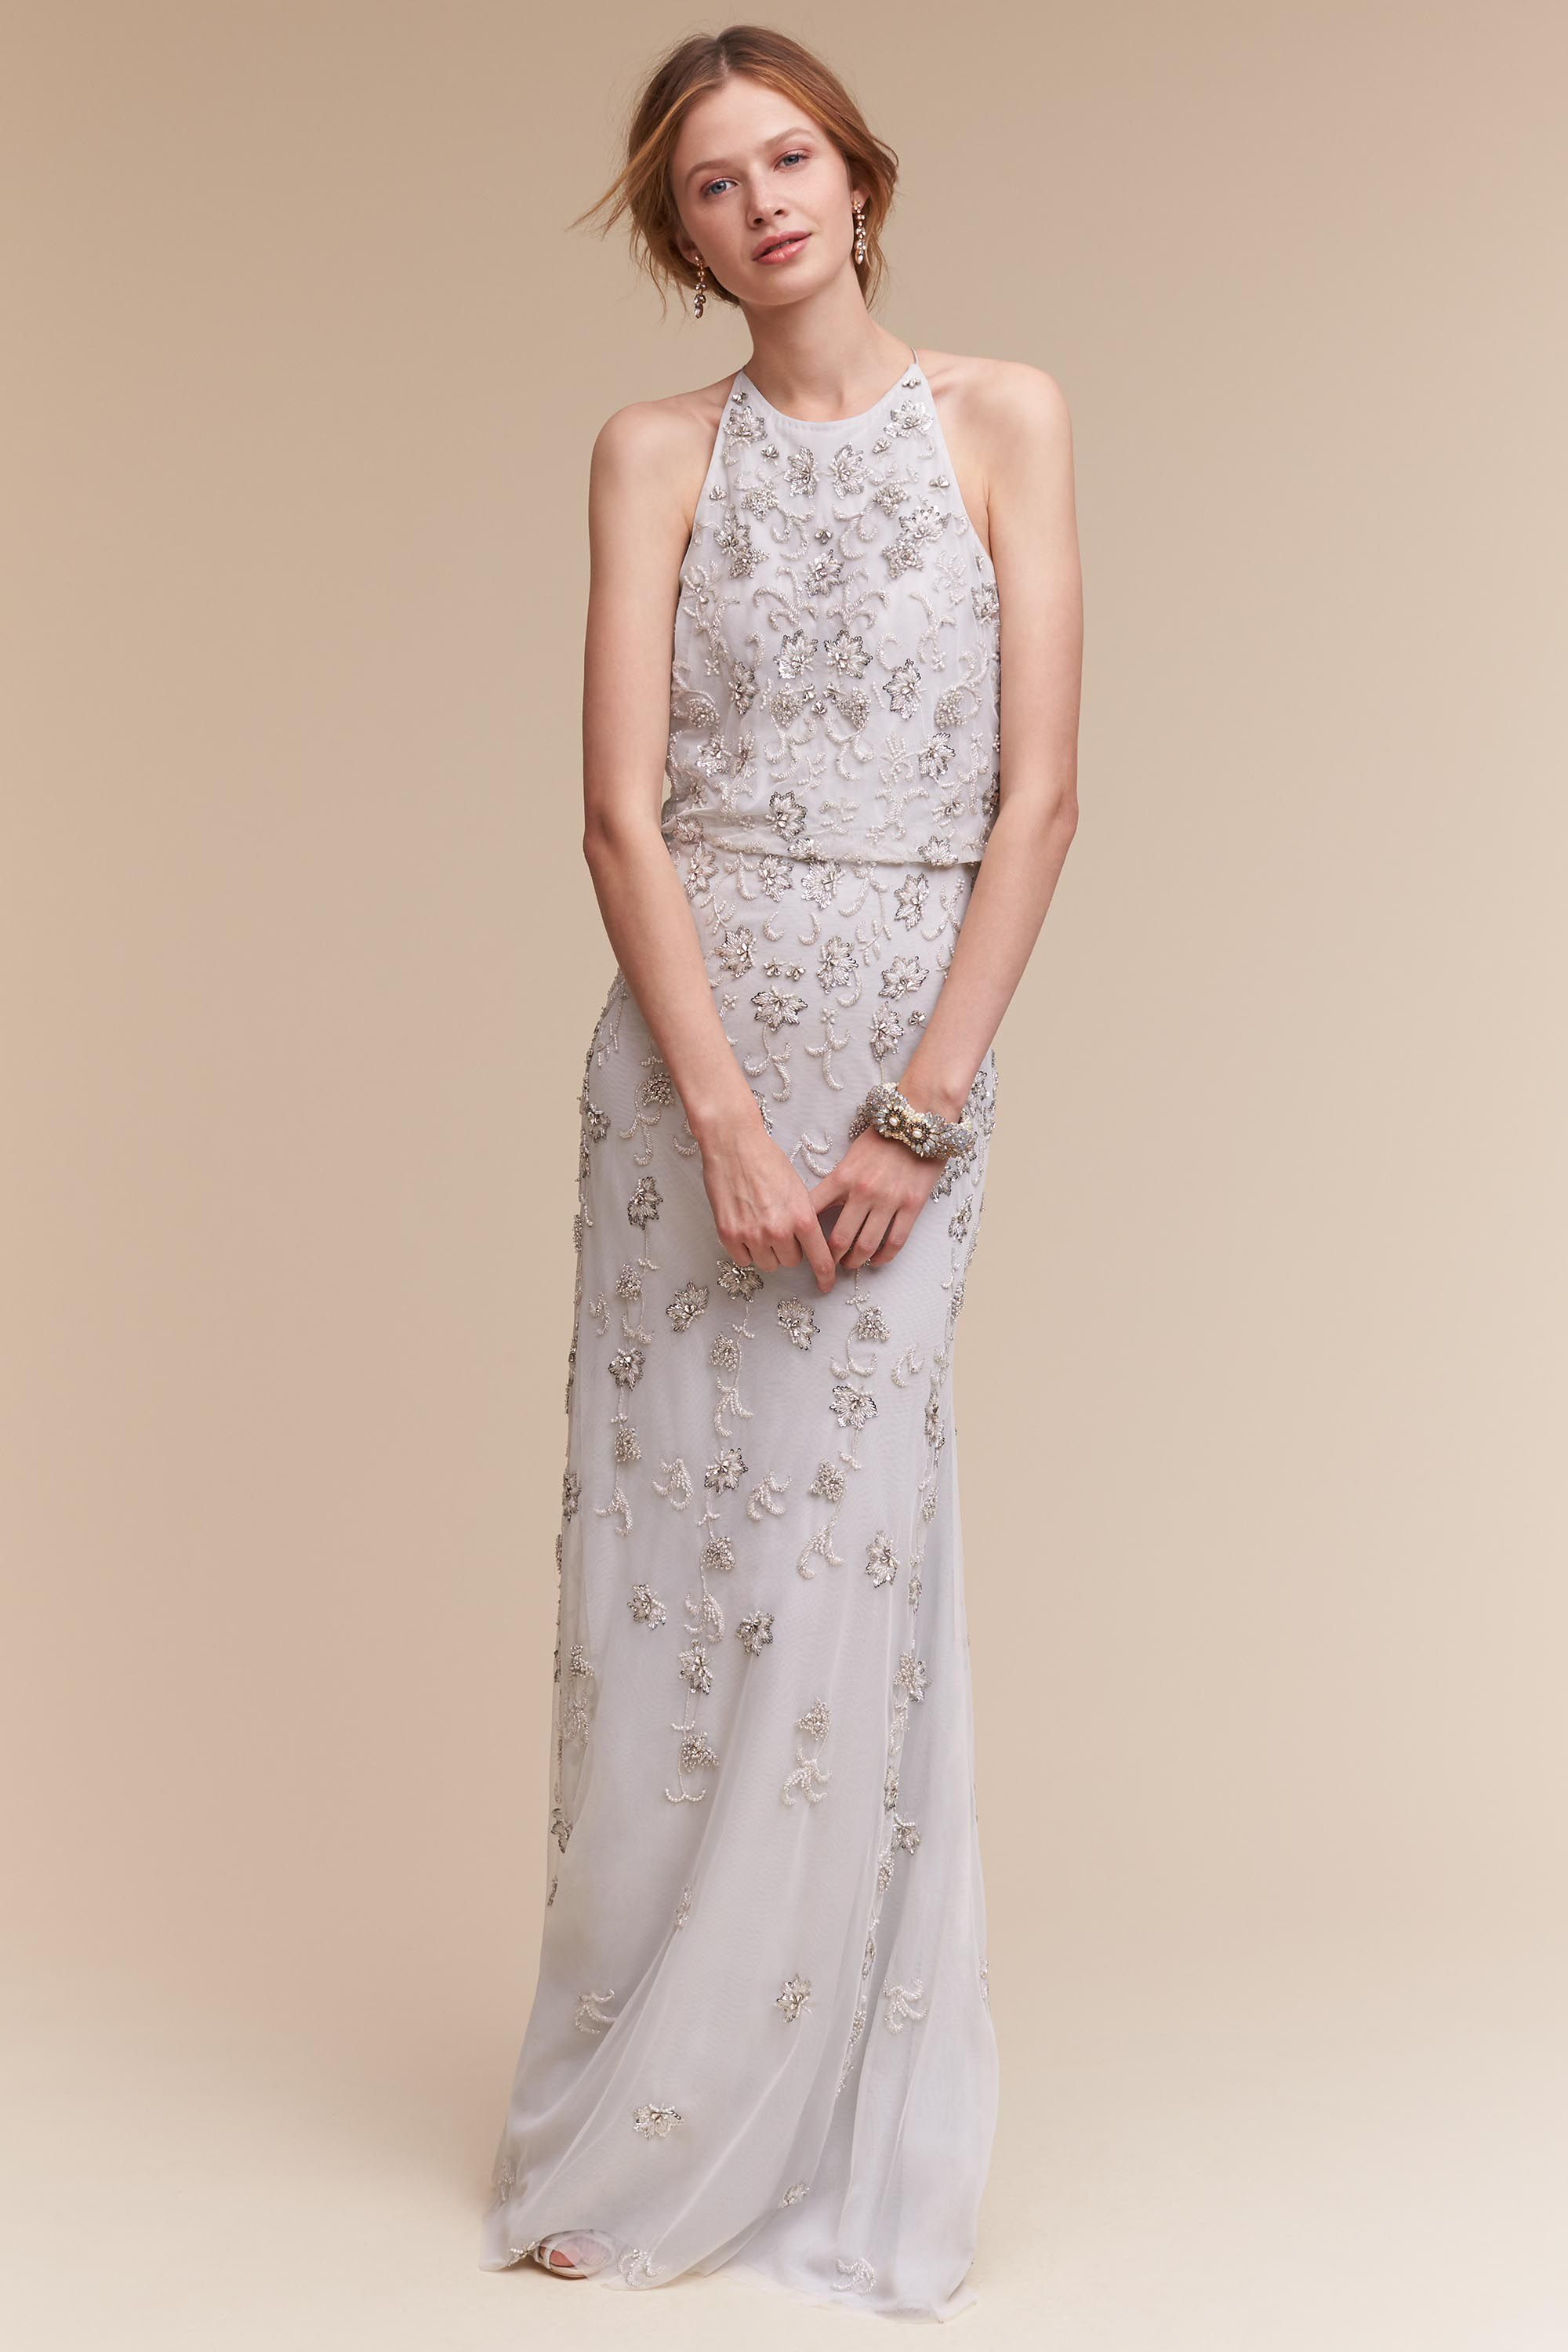 Romantic BHLDN Wedding Dresses - Starling Gown